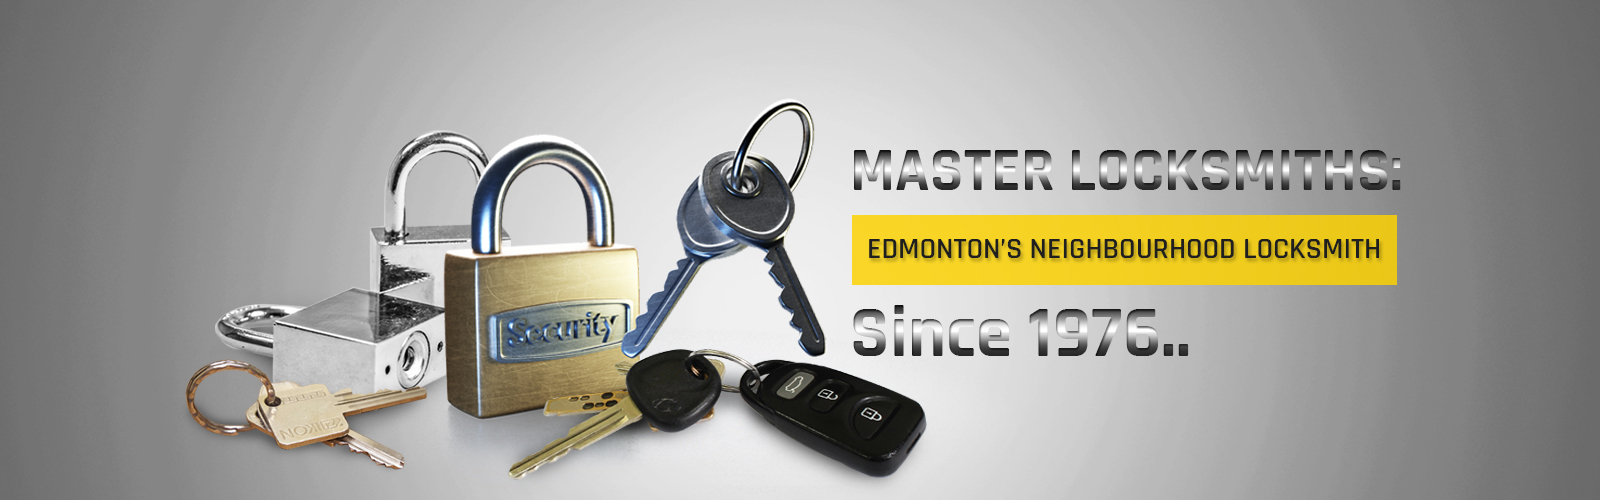 Master Locksmiths - Edmonton's Neighbourhood Locksmith - Call 780-474-9011